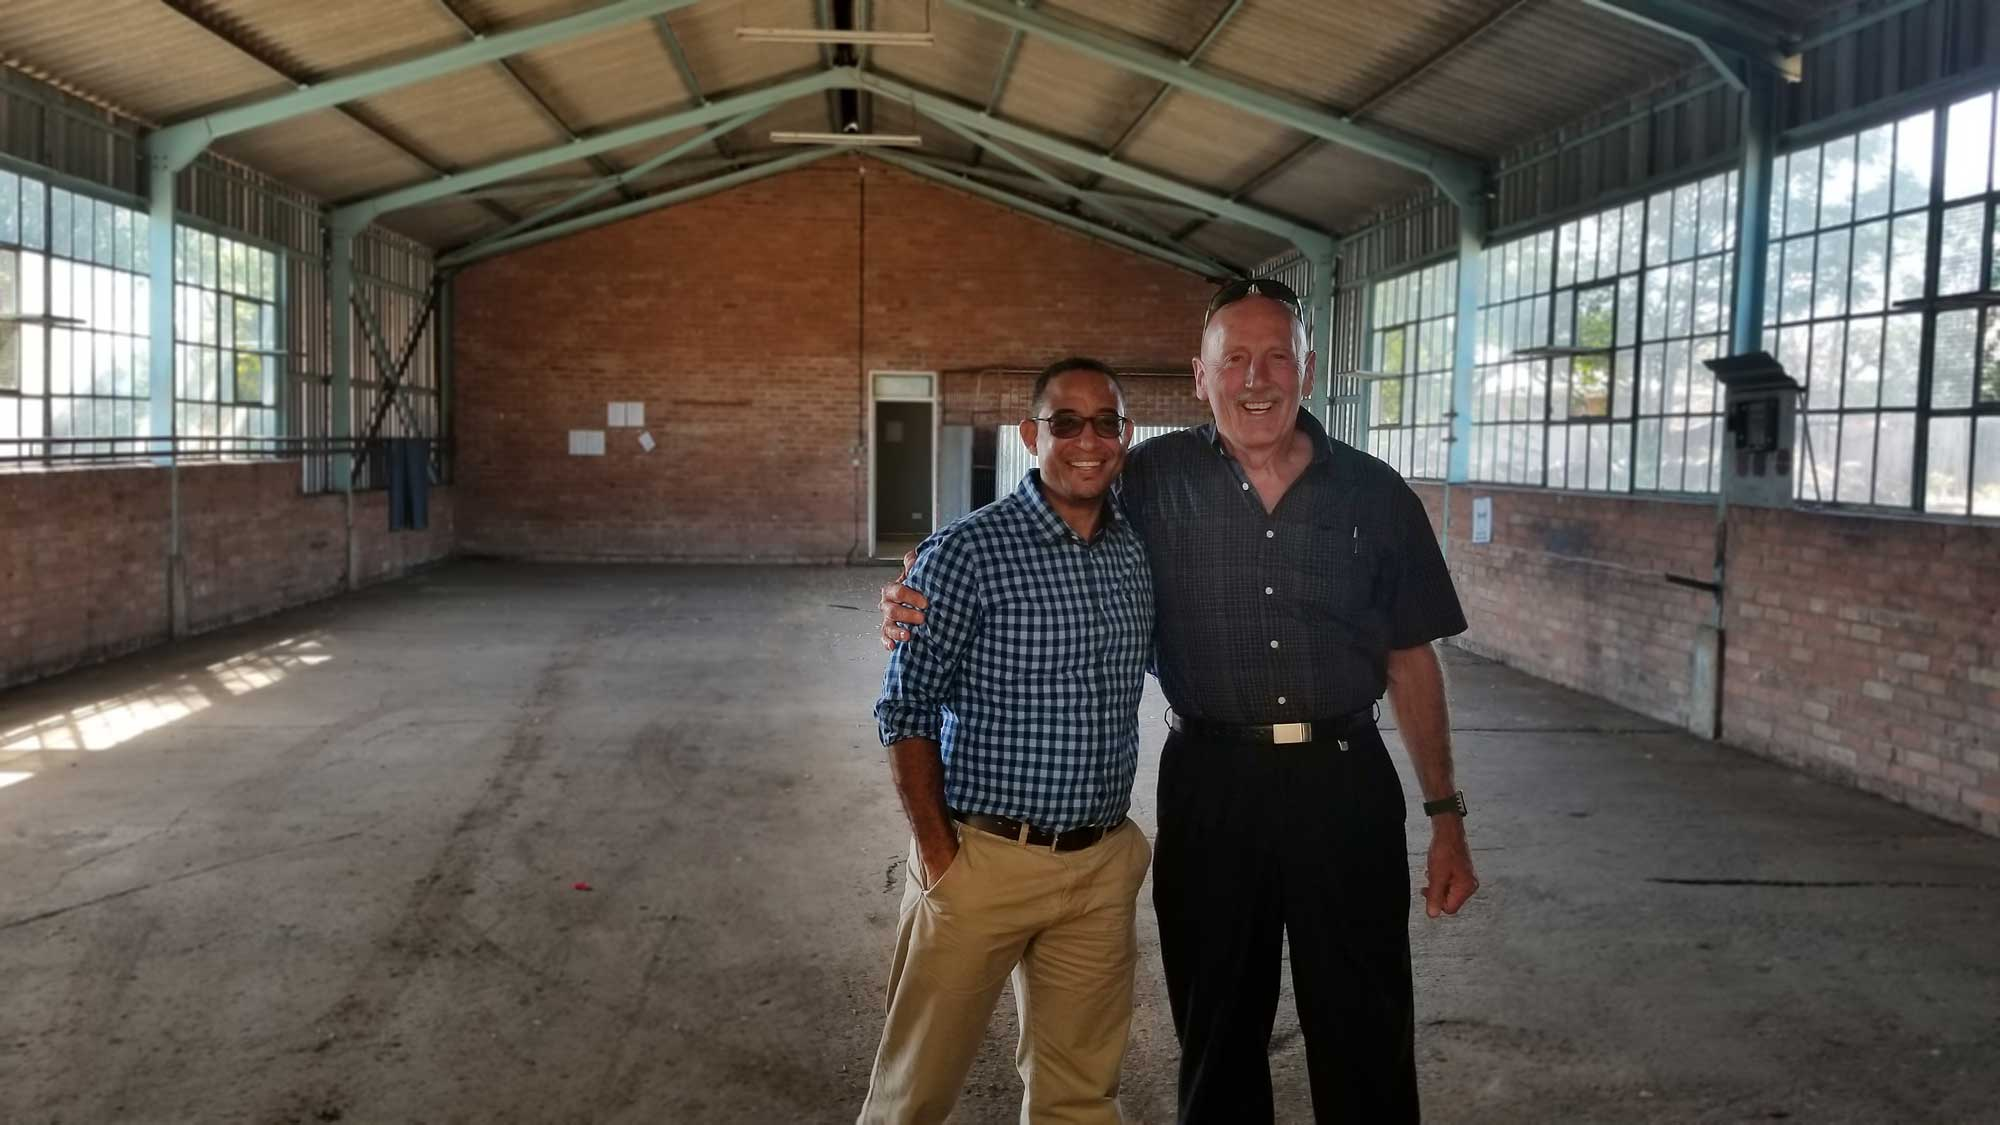 Eugene Jackson (left) - founder of Pump and Steel Supplies, along with Ray Chellew of Skok Machine Tool in the original 2,000sqft building where the journey started